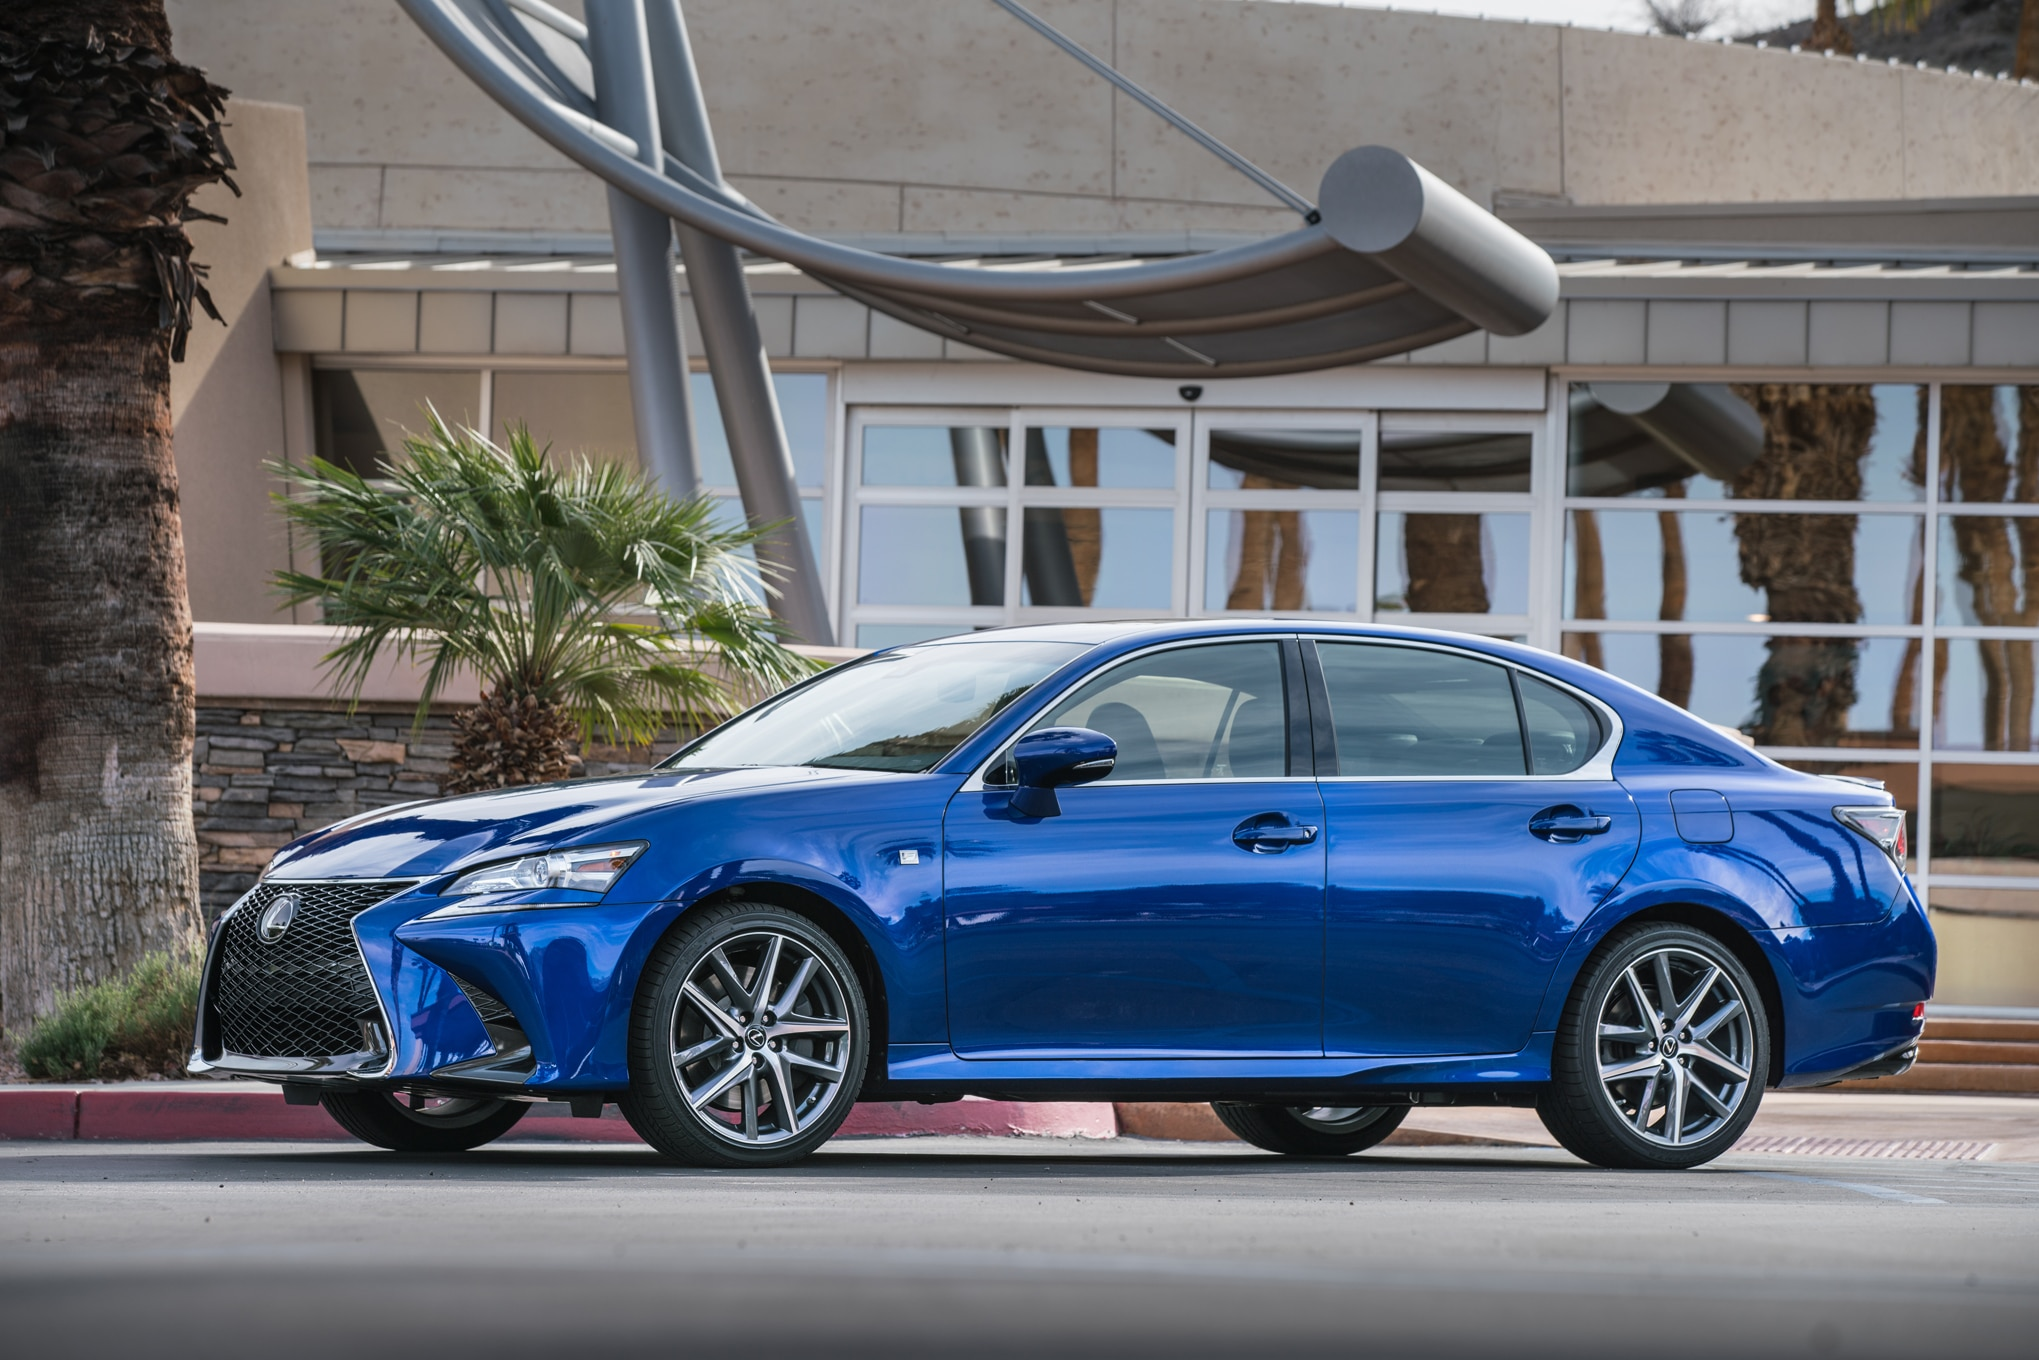 http://st.automobilemag.com/uploads/sites/11/2015/12/2016-Lexus-GS-200t-F-Sport-front-three-quarter-03.jpg